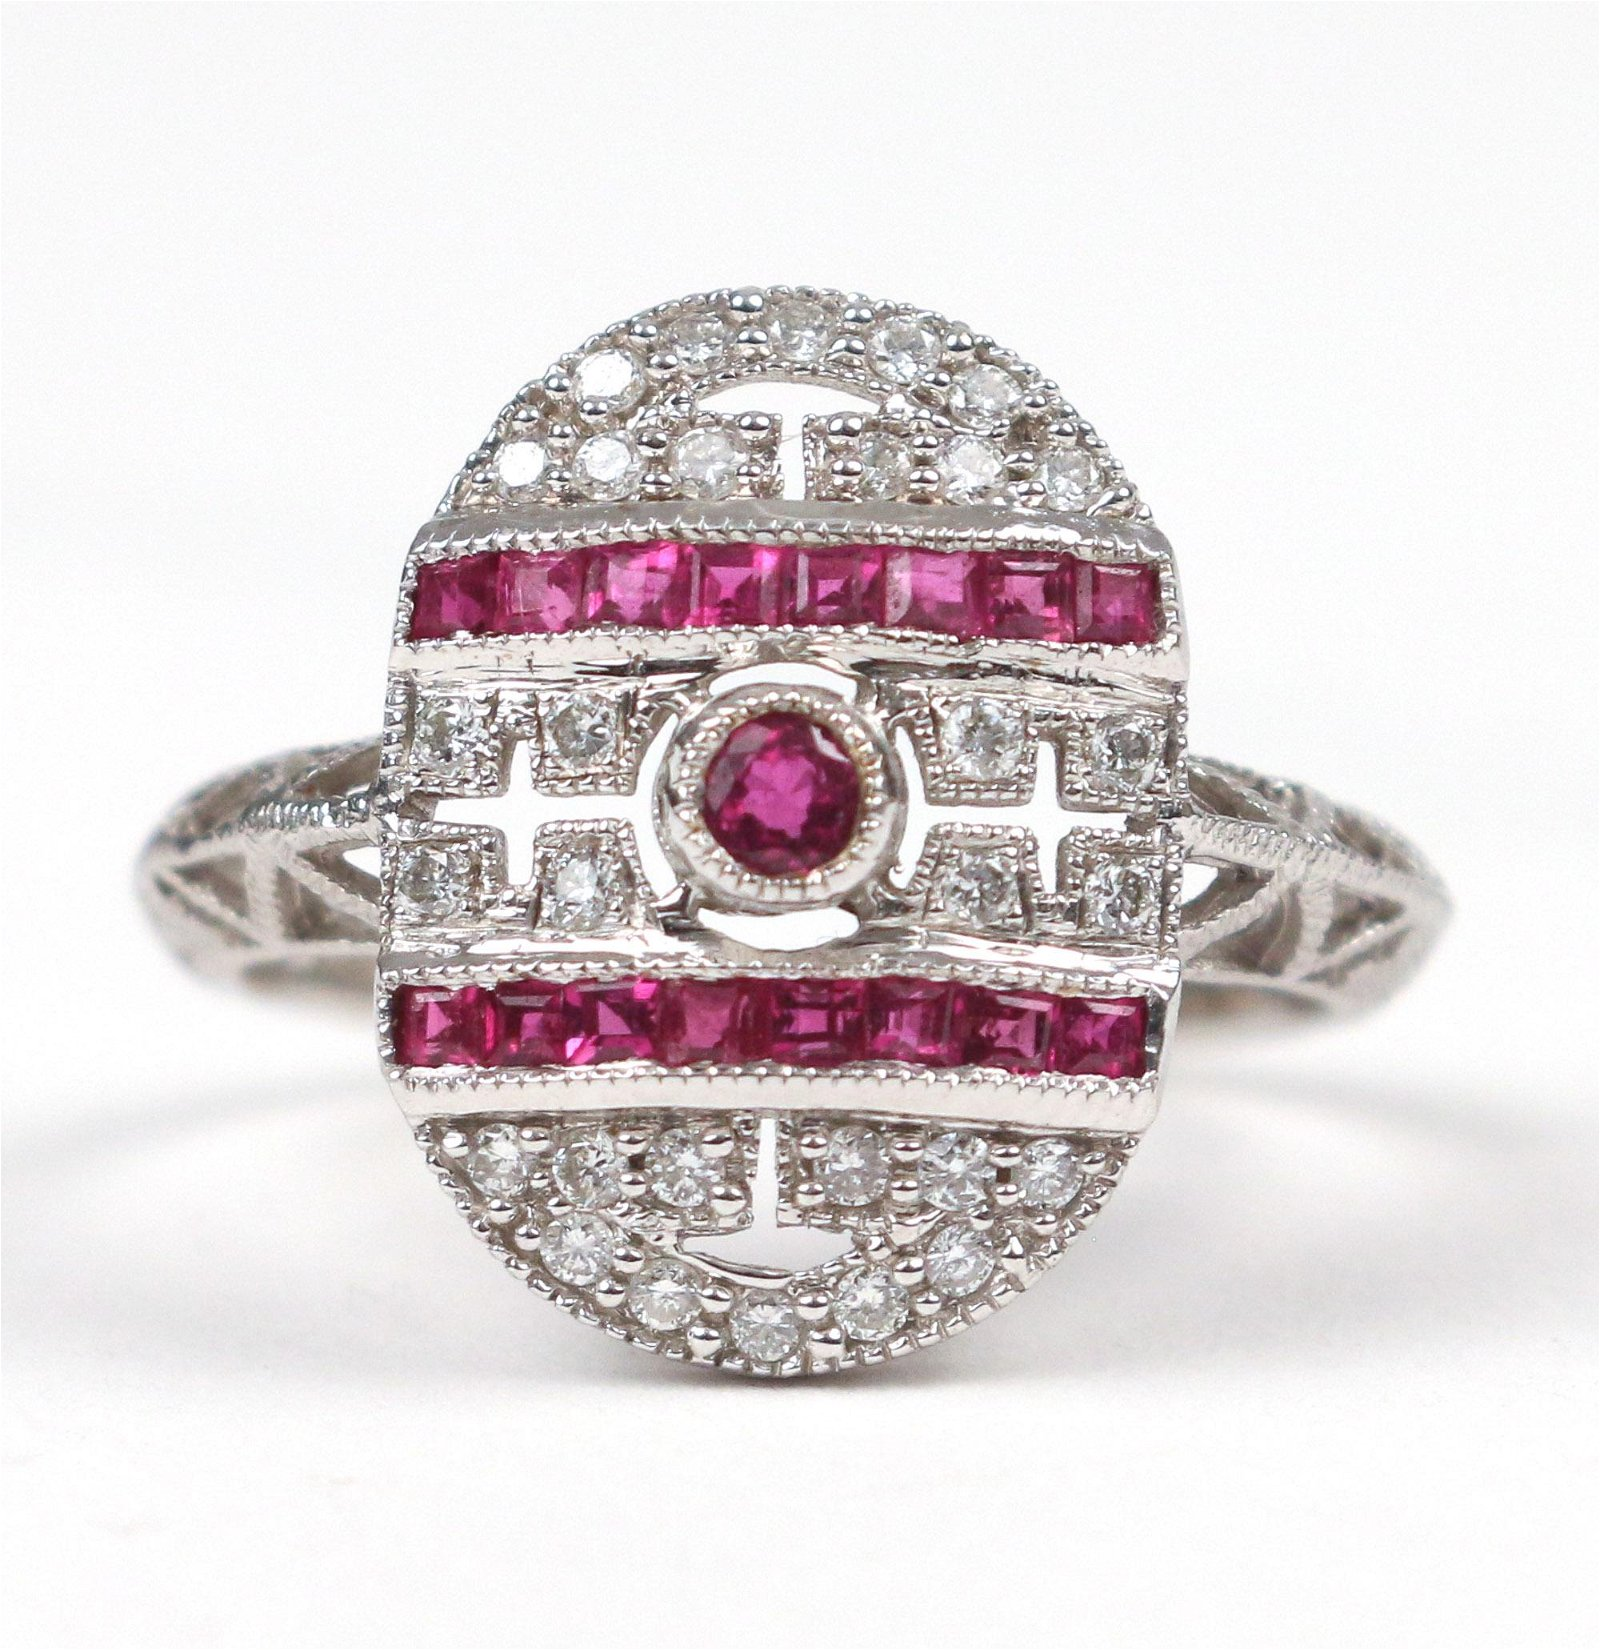 18k WHITE GOLD, DIAMOND & RUBY COCKTAIL RING